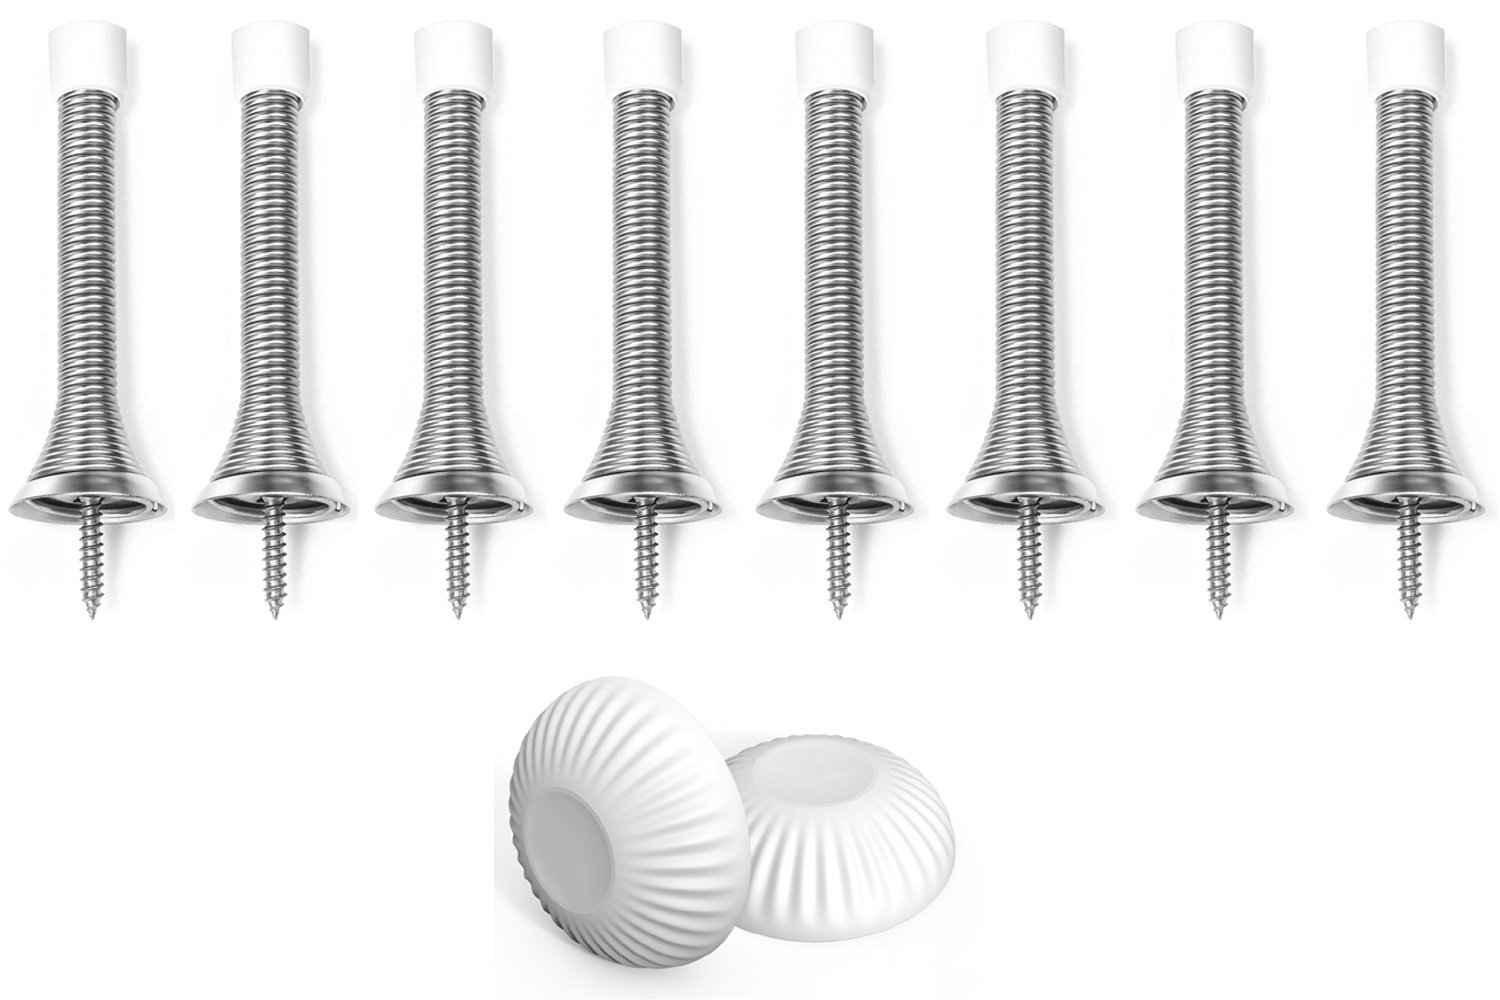 Door Stops for Wall 10 Pc Door Stopper Spring with White Rubber Bumper Protect Your Walls